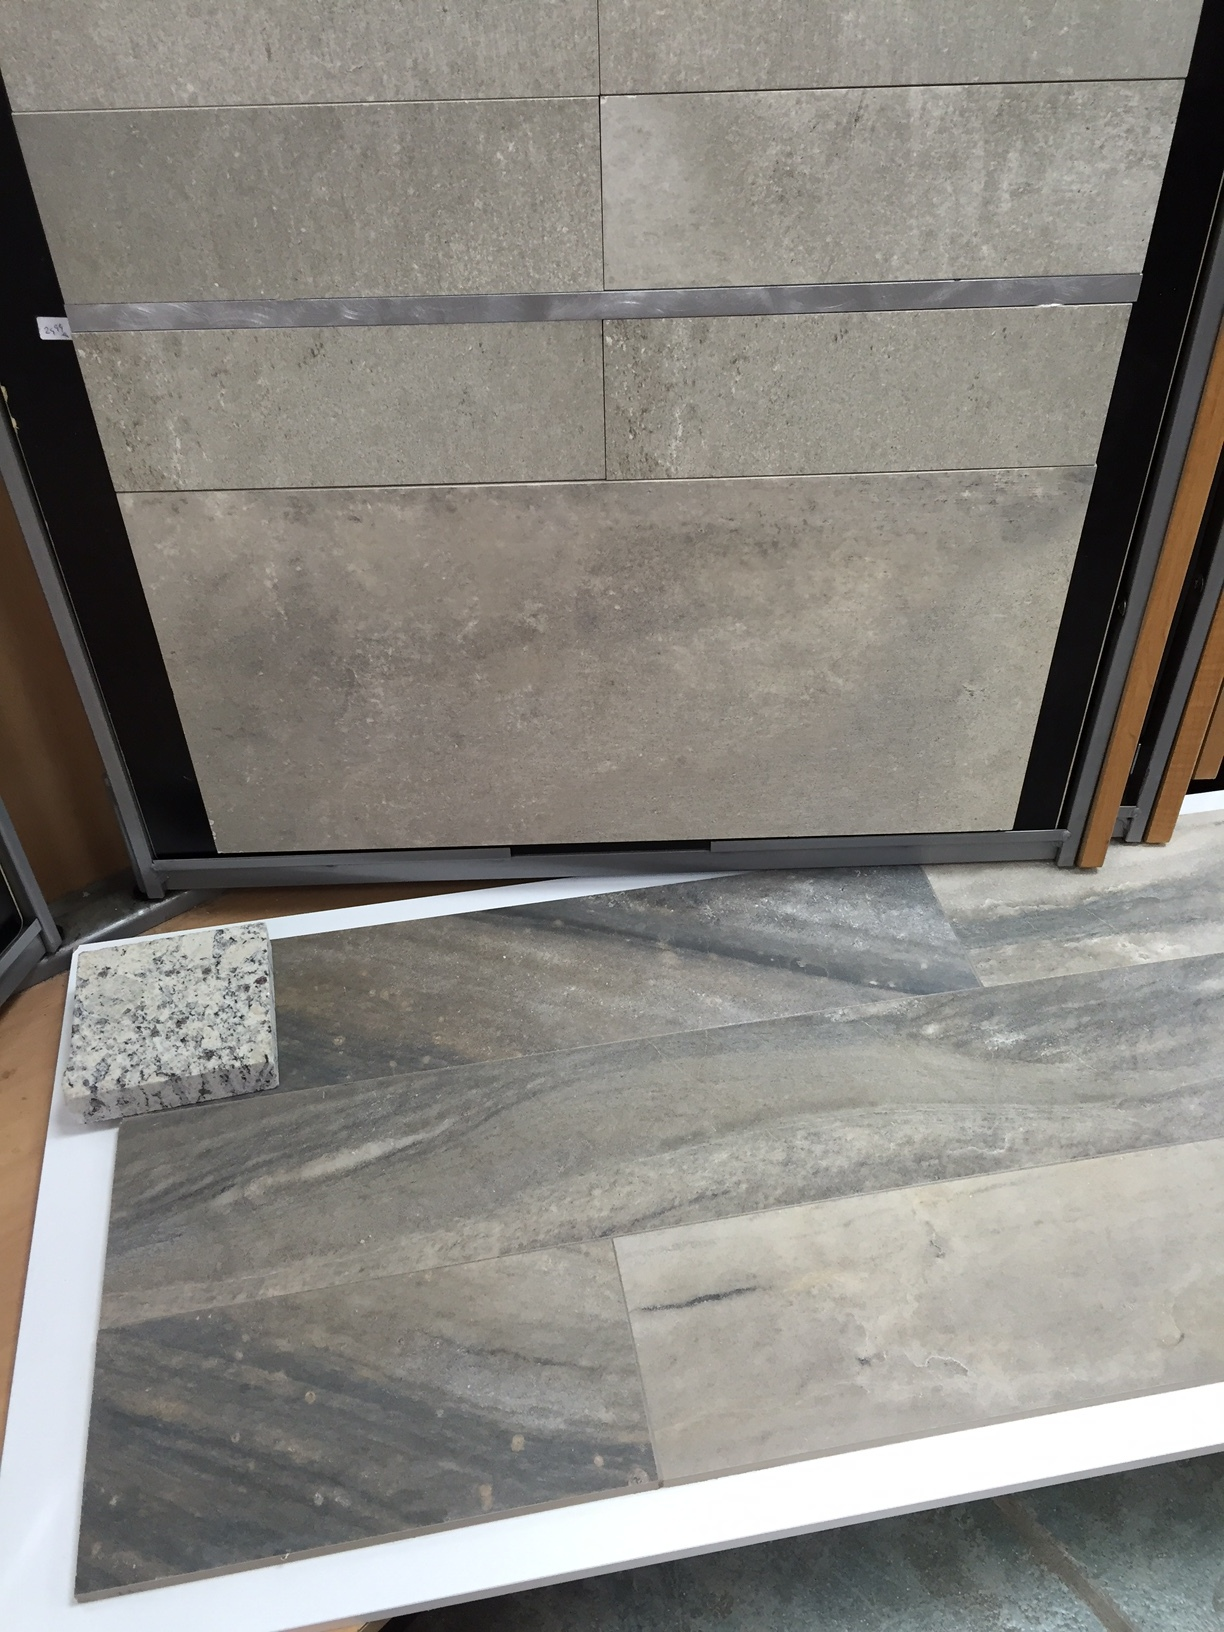 Tile Selection - For the shower walls and around the tub deck we chose 4